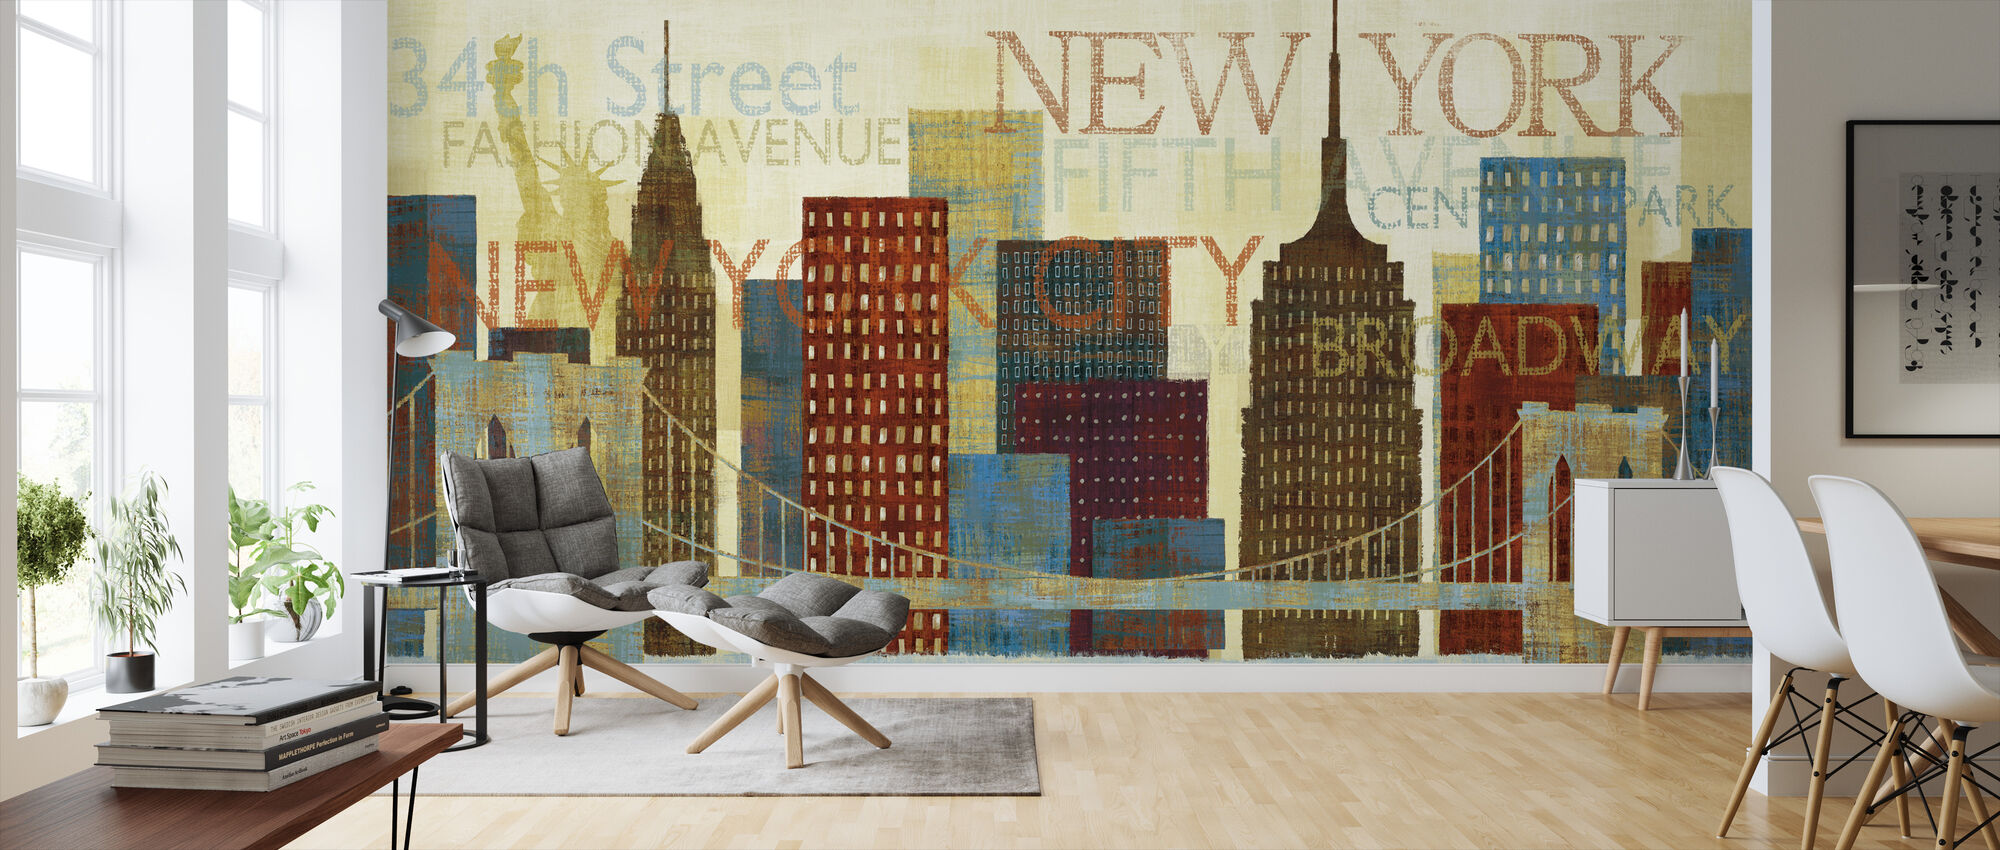 Hey New York - Wallpaper - Living Room